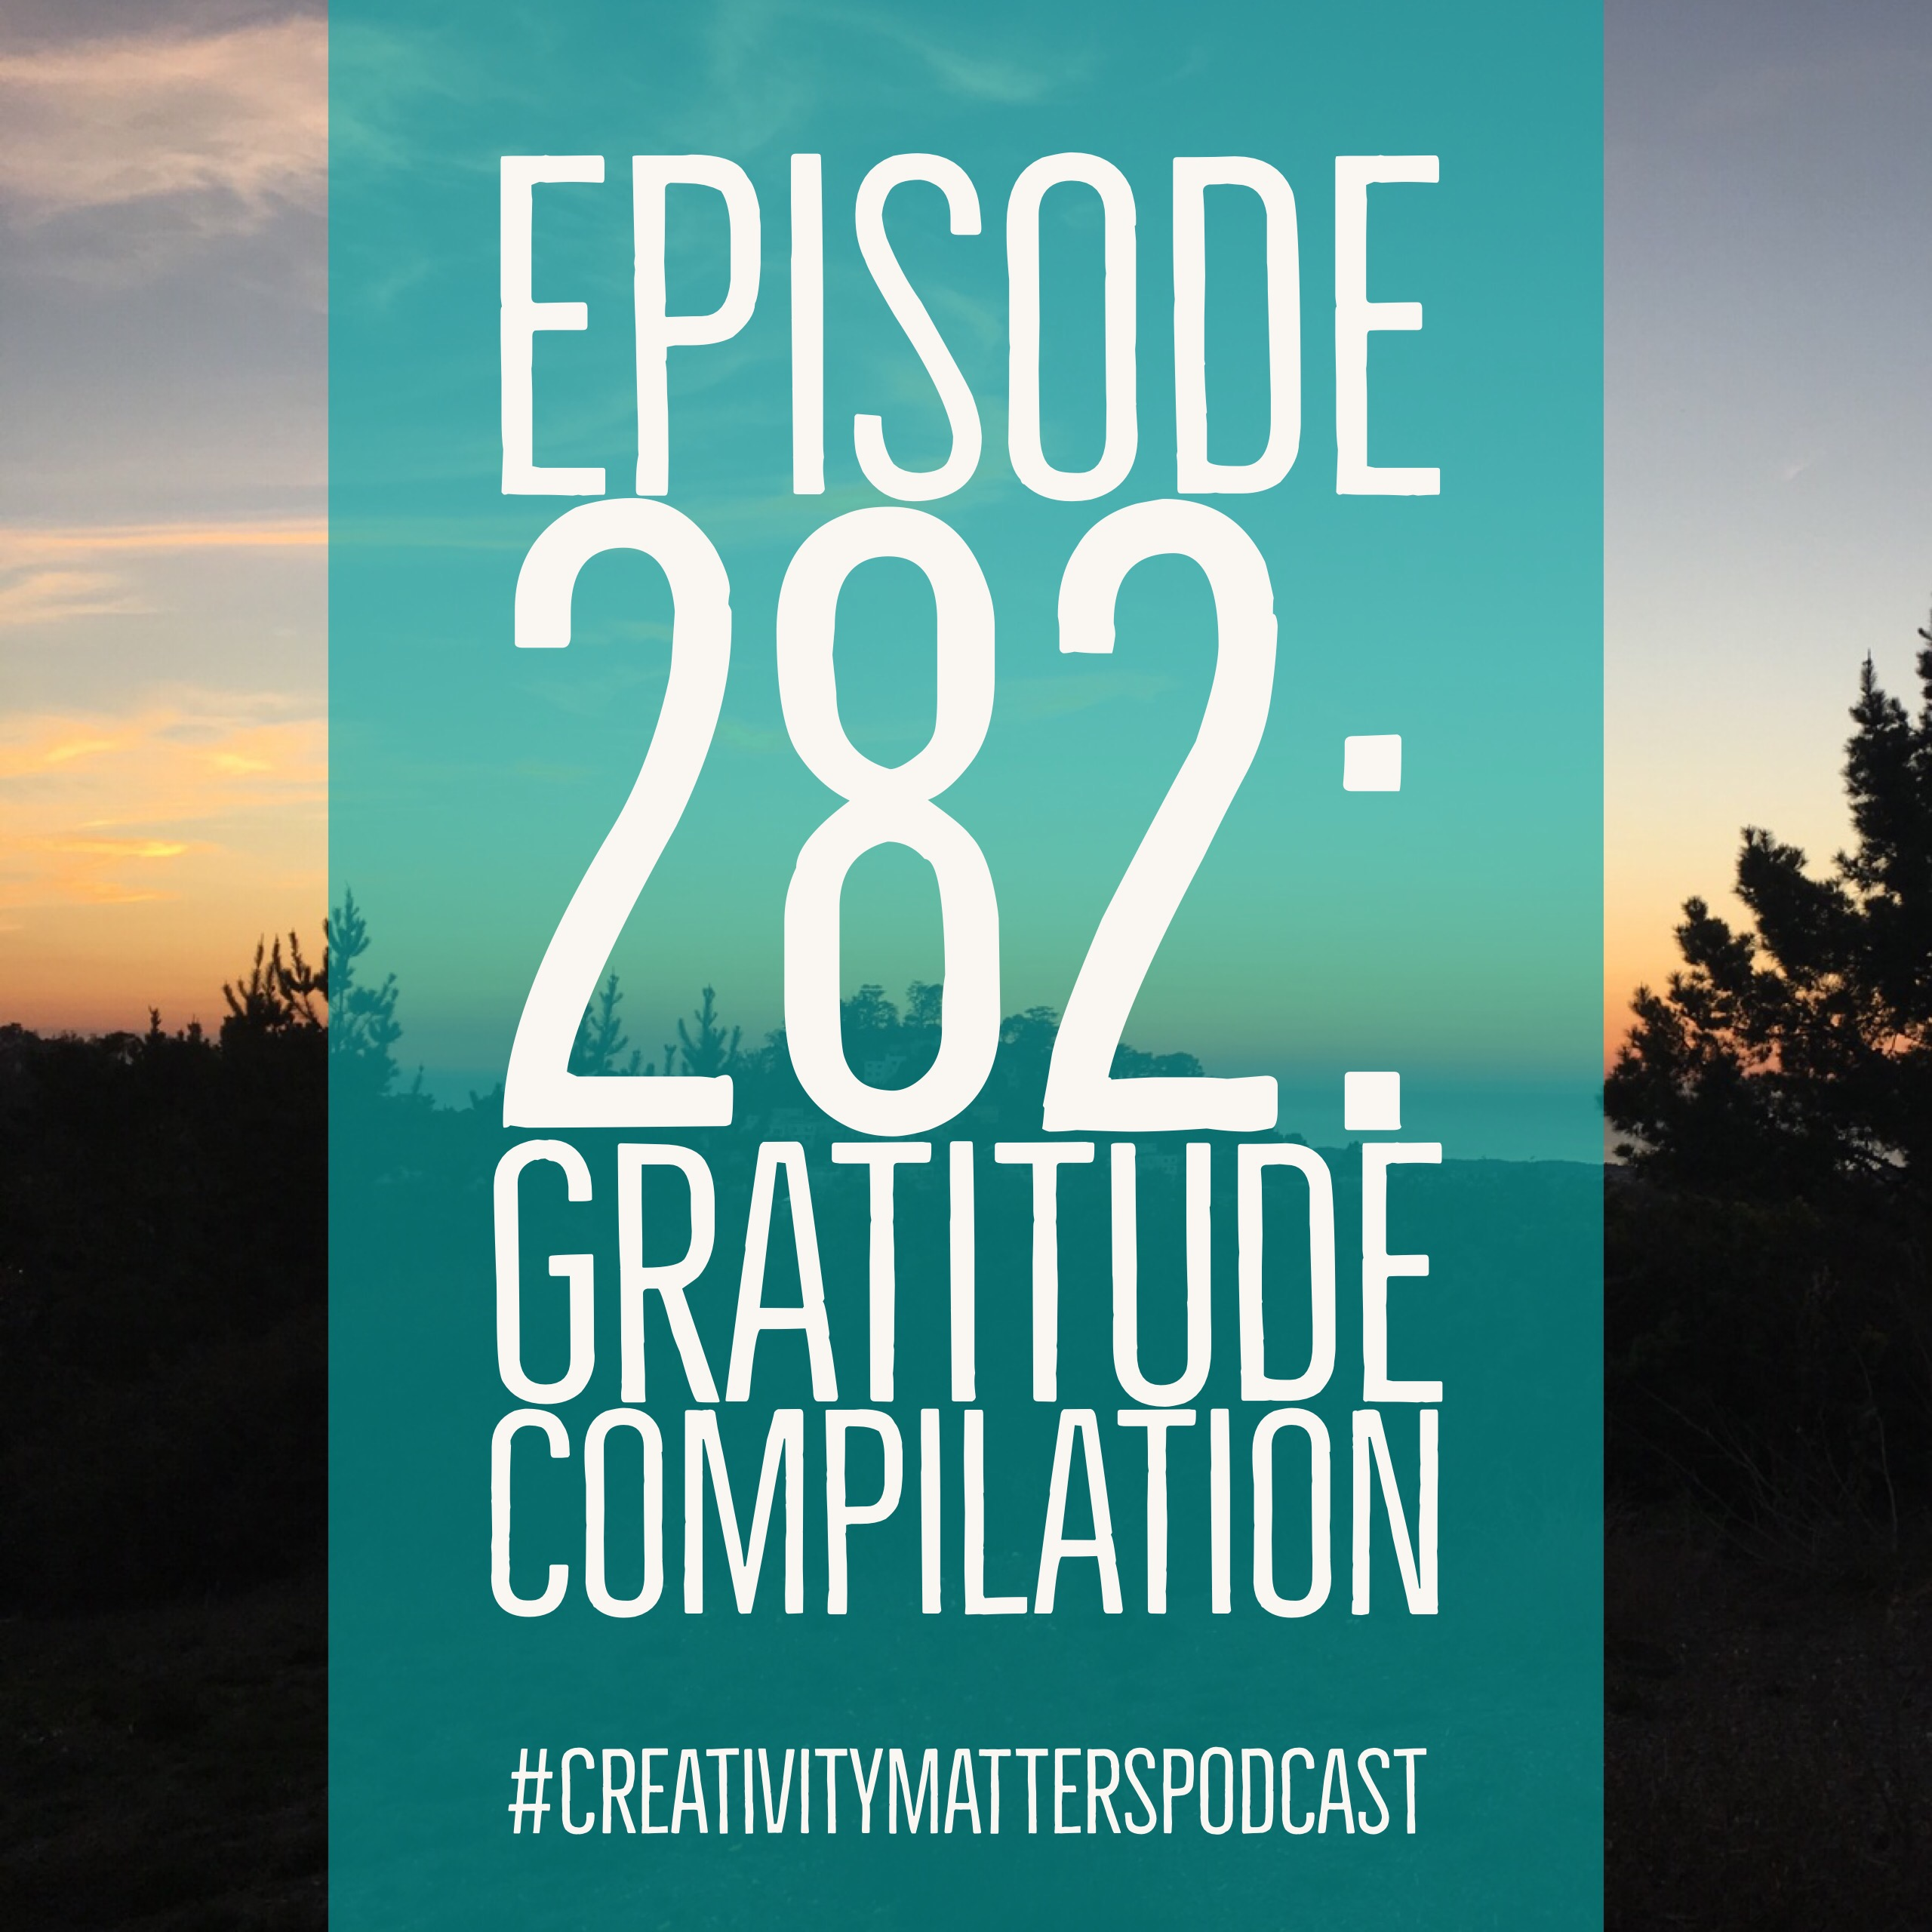 Episode 282: Gratitude Compilation